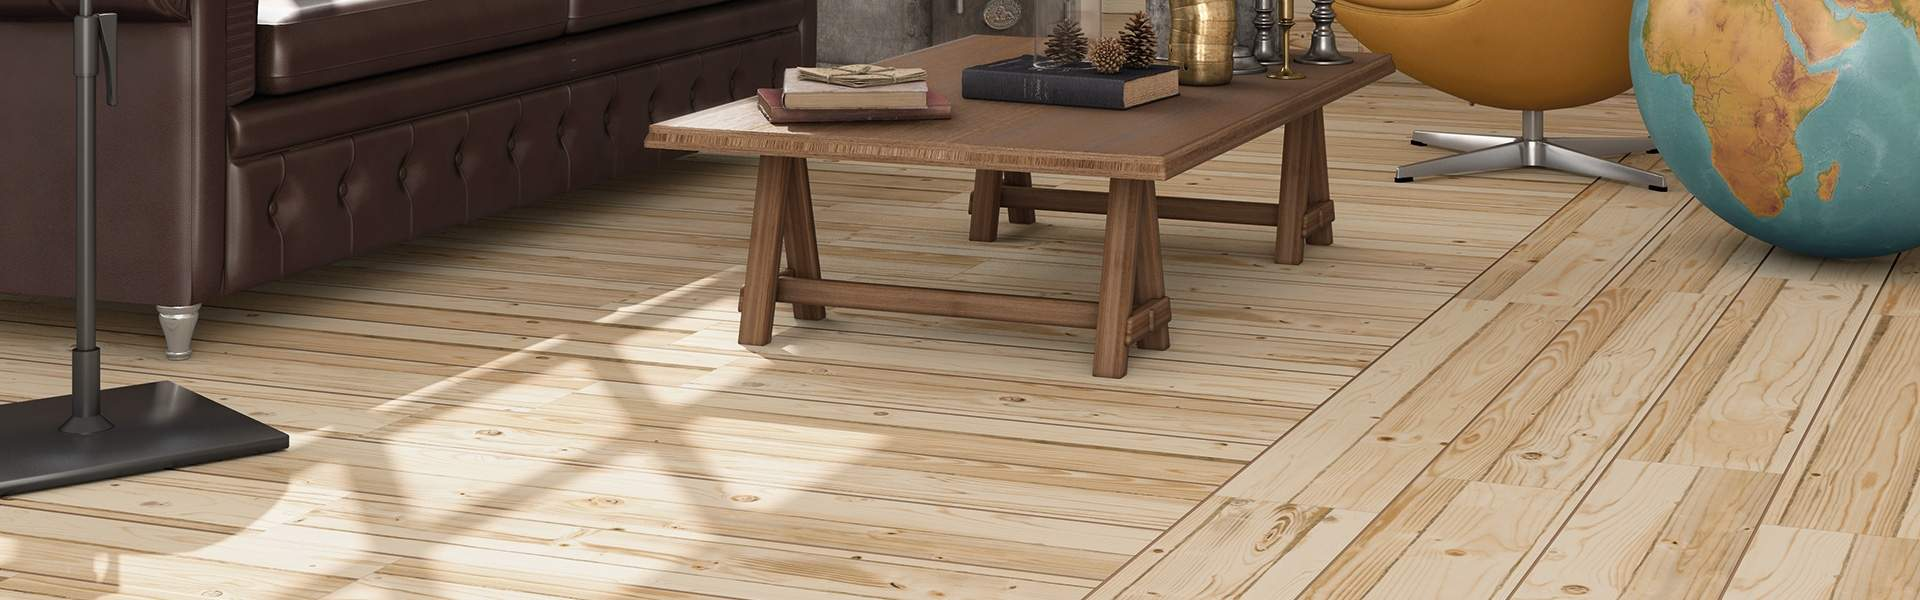 Pine Style Wood Effect Tiles